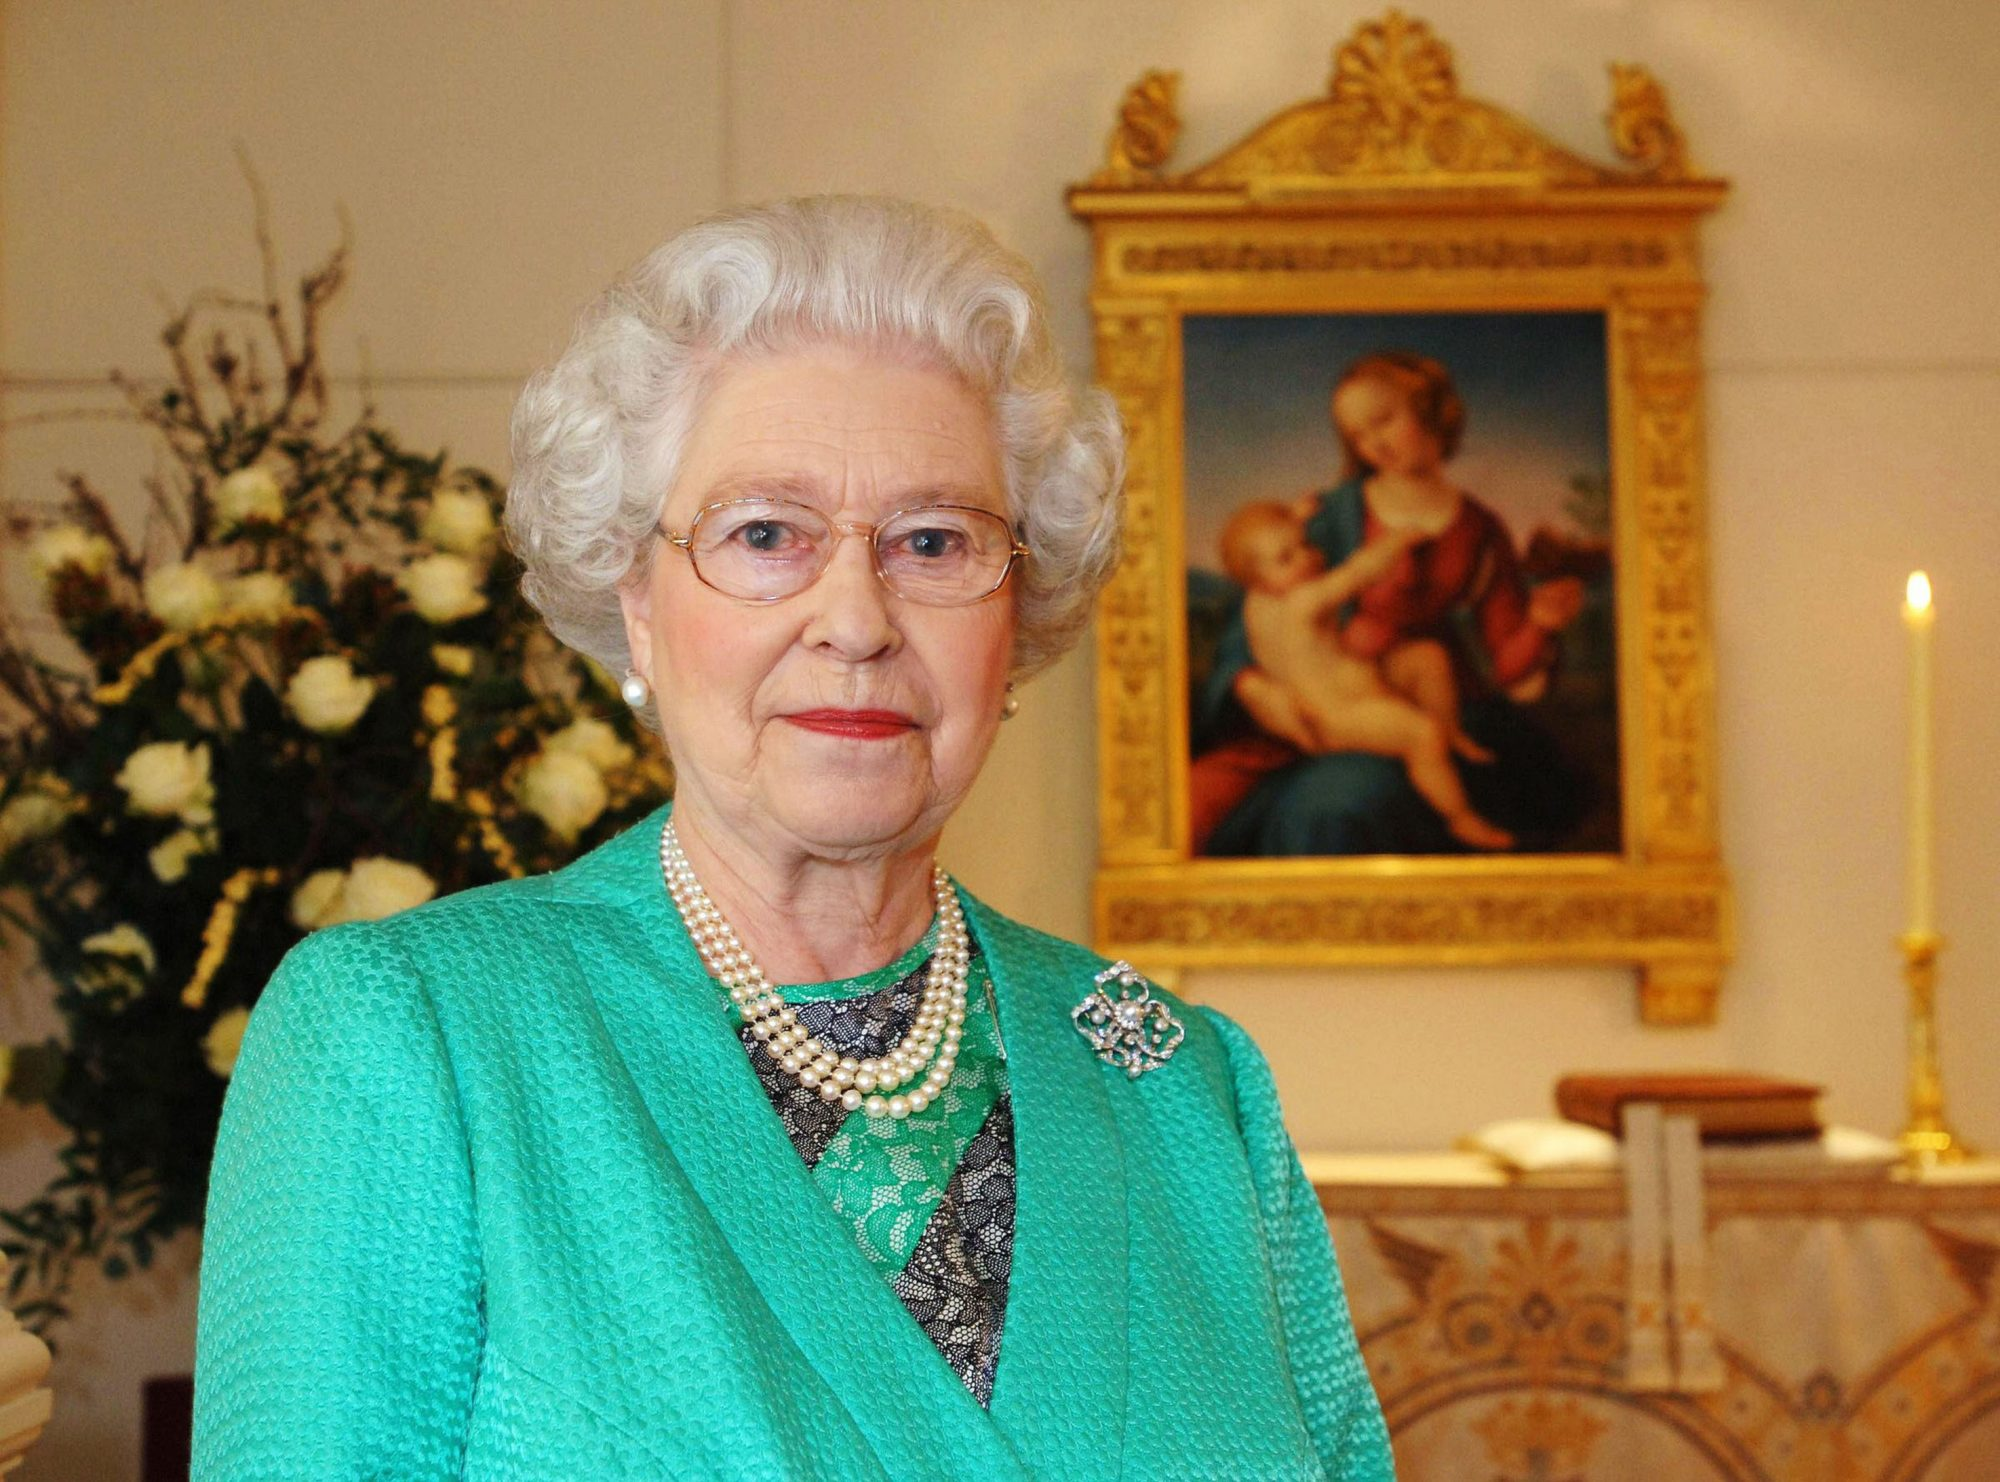 The Queen's 2005 Christmas Broadcast